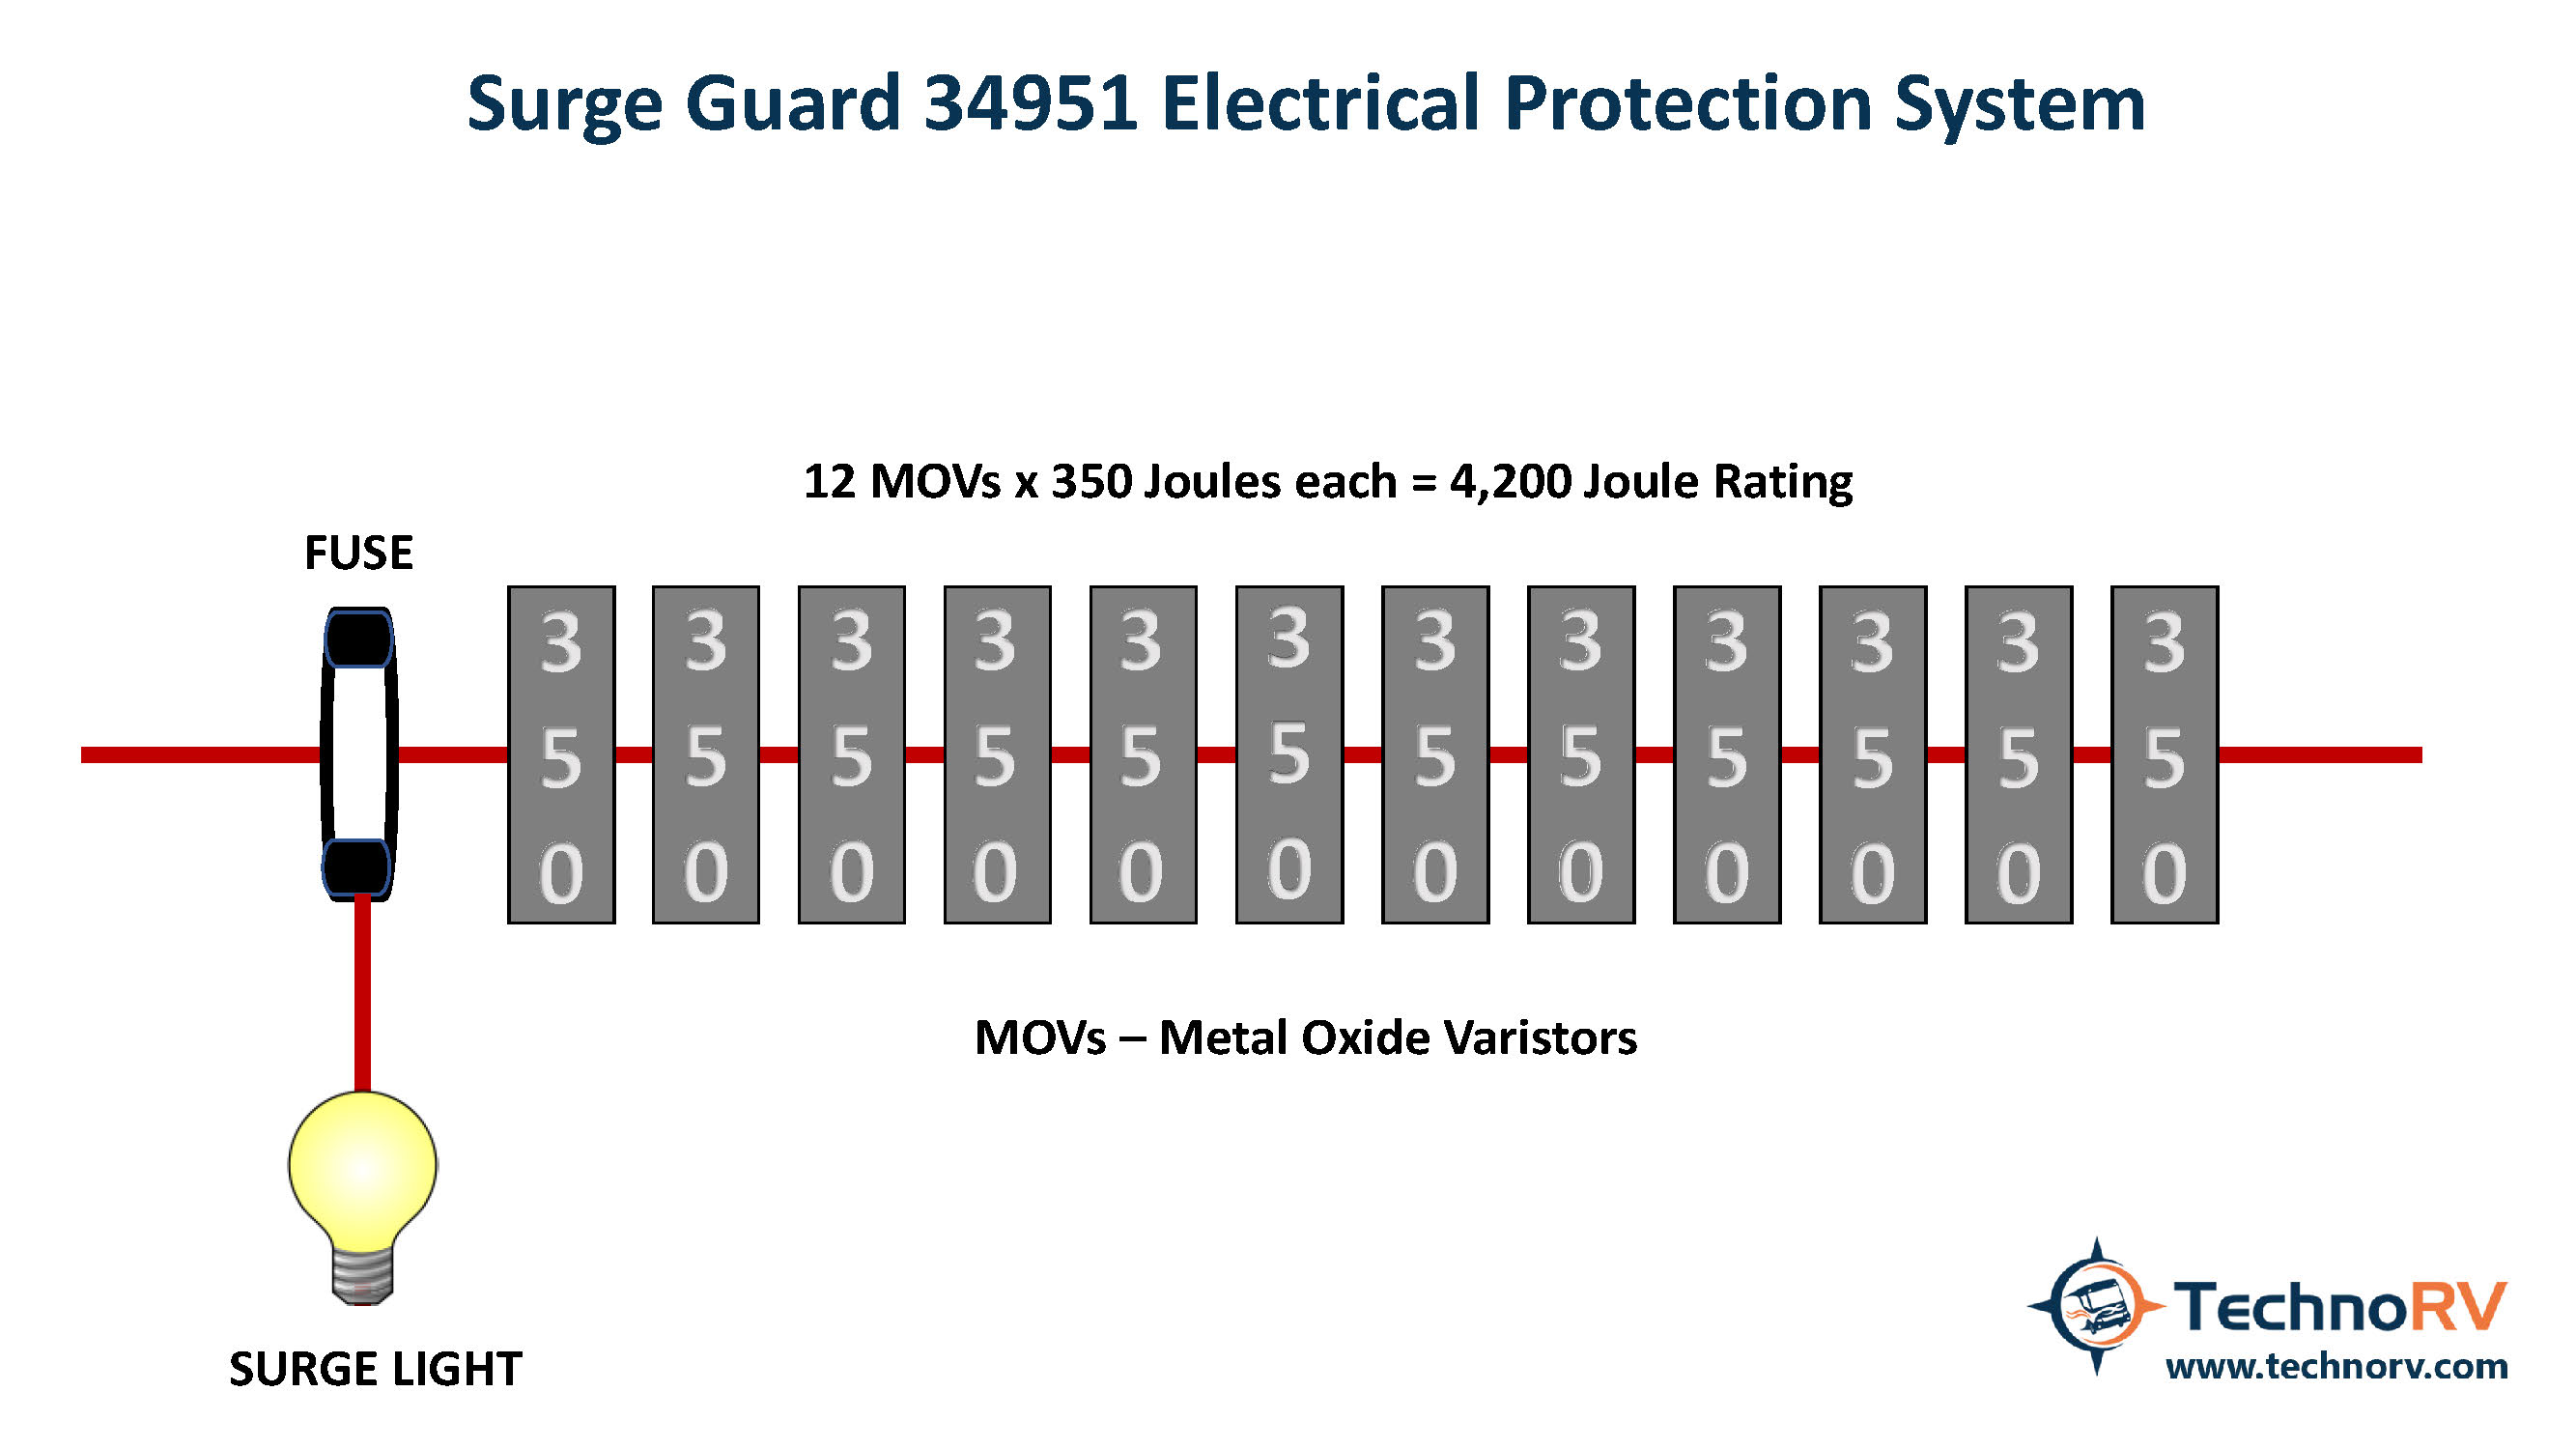 Surge Guard Electrical Diagram with Joule Rating